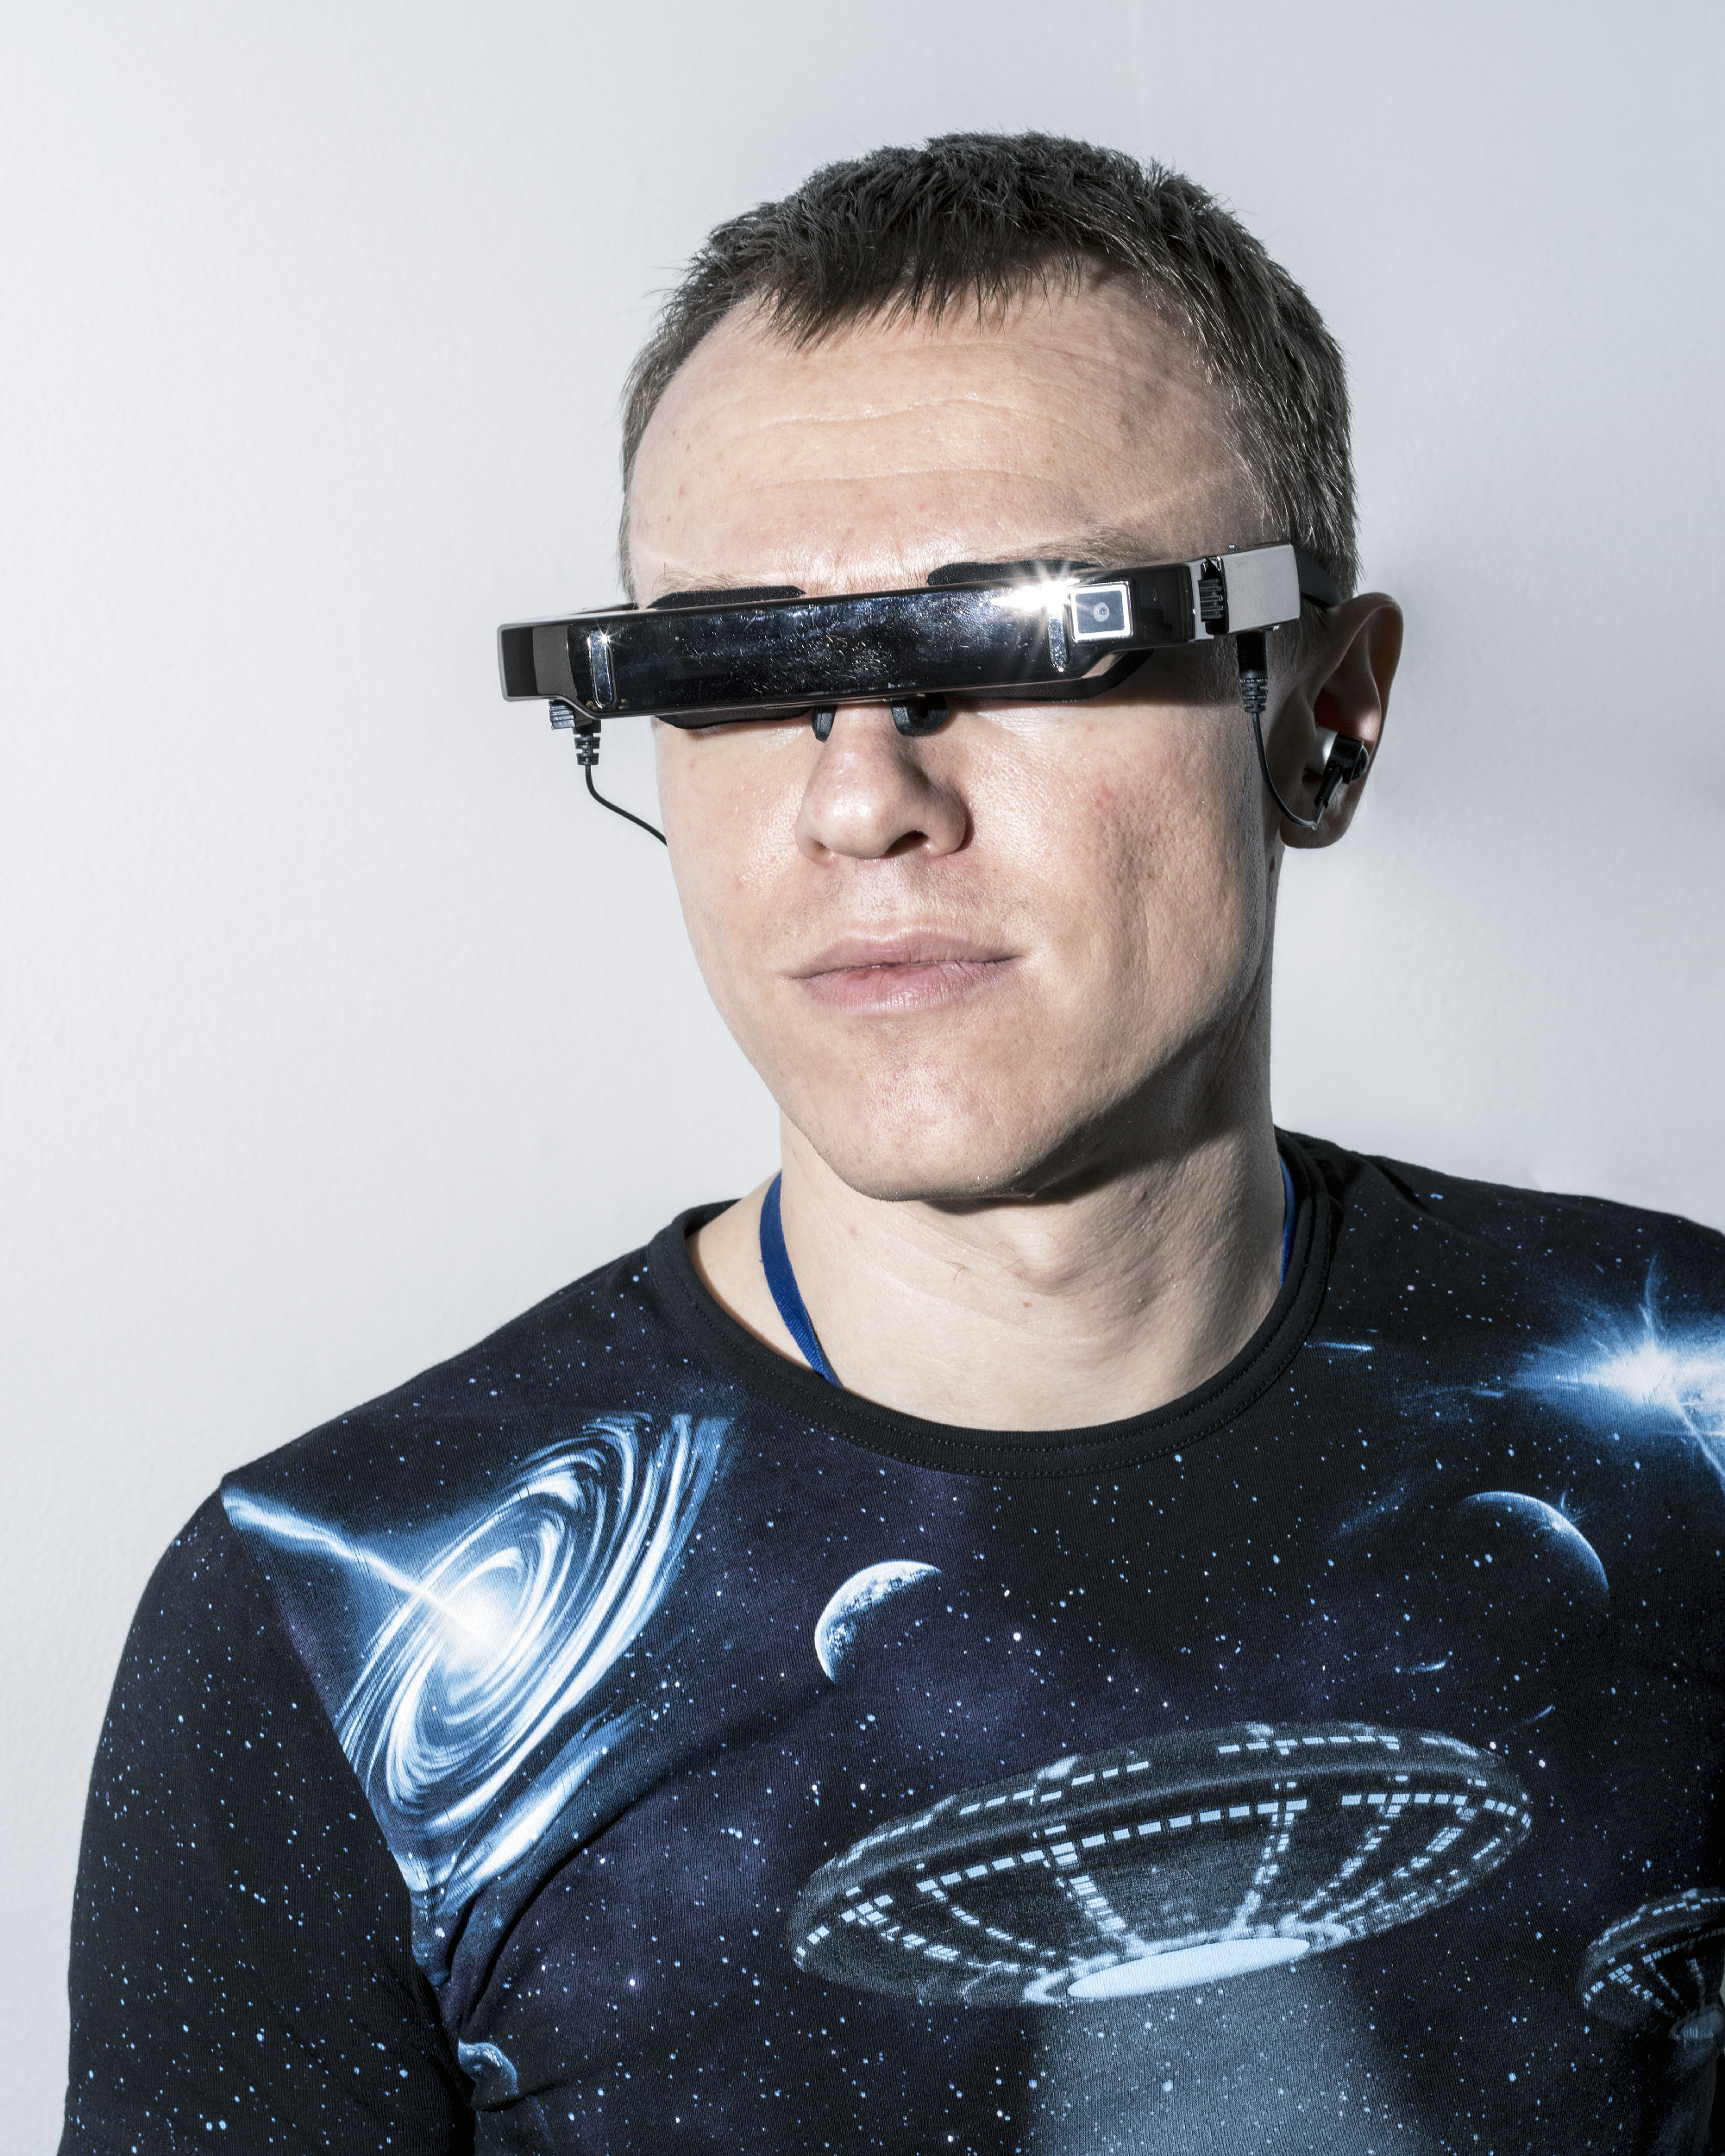 Businessman Igor Trapeznikov, a member of Russia's transhumanist movement, wears several handmade experimental implants, including a device that turns sights into sounds, which could prove useful for blind or vision-impaired people. His also has various handmade microchip implants that replace his credit card and house keys, for example.  Moscow, June 21, 2017